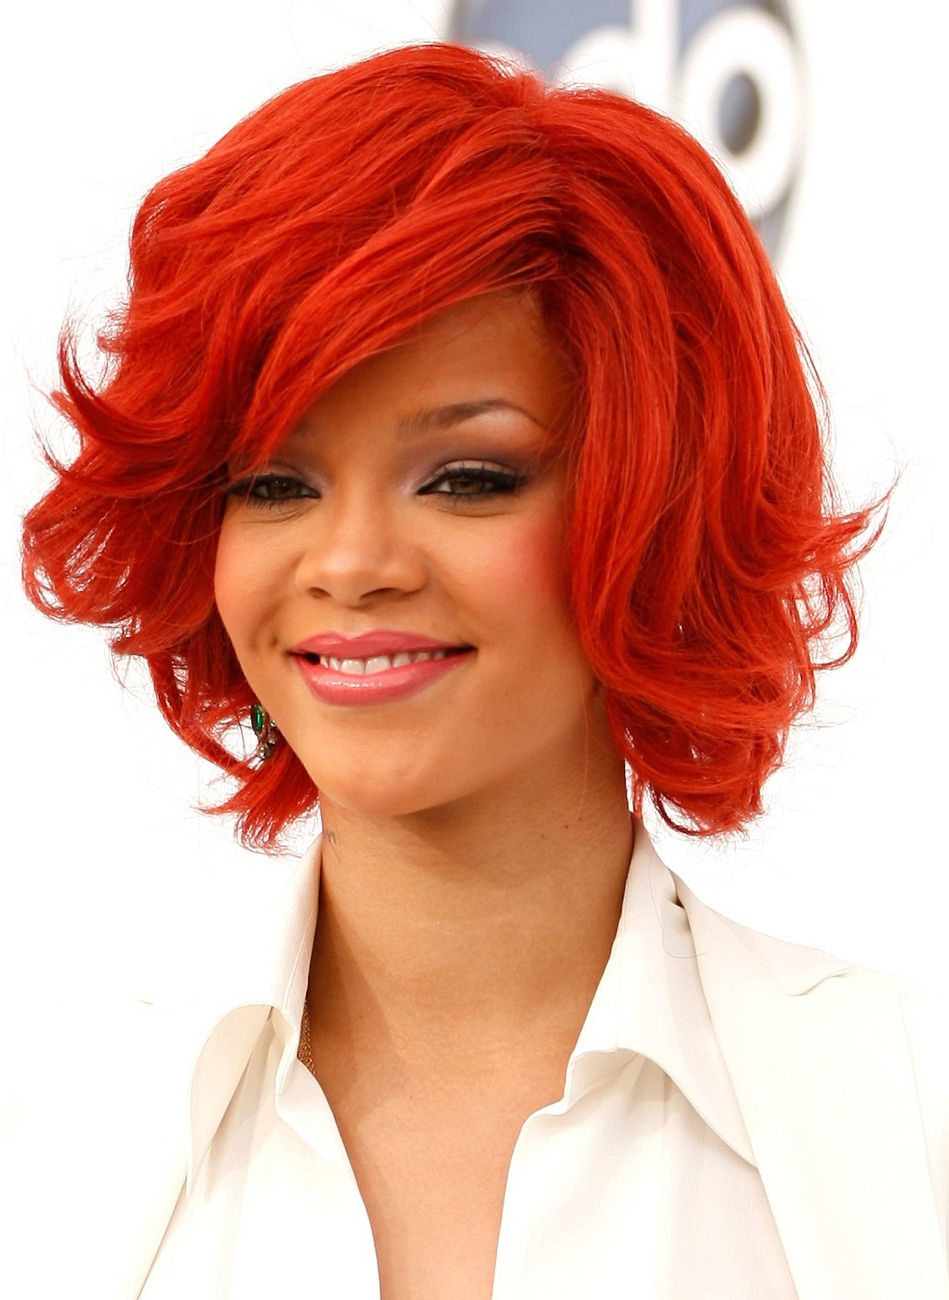 New Haircut Style » Hair Color 2011: The Hottest Trends intended for Bright Red Short Hairstyles